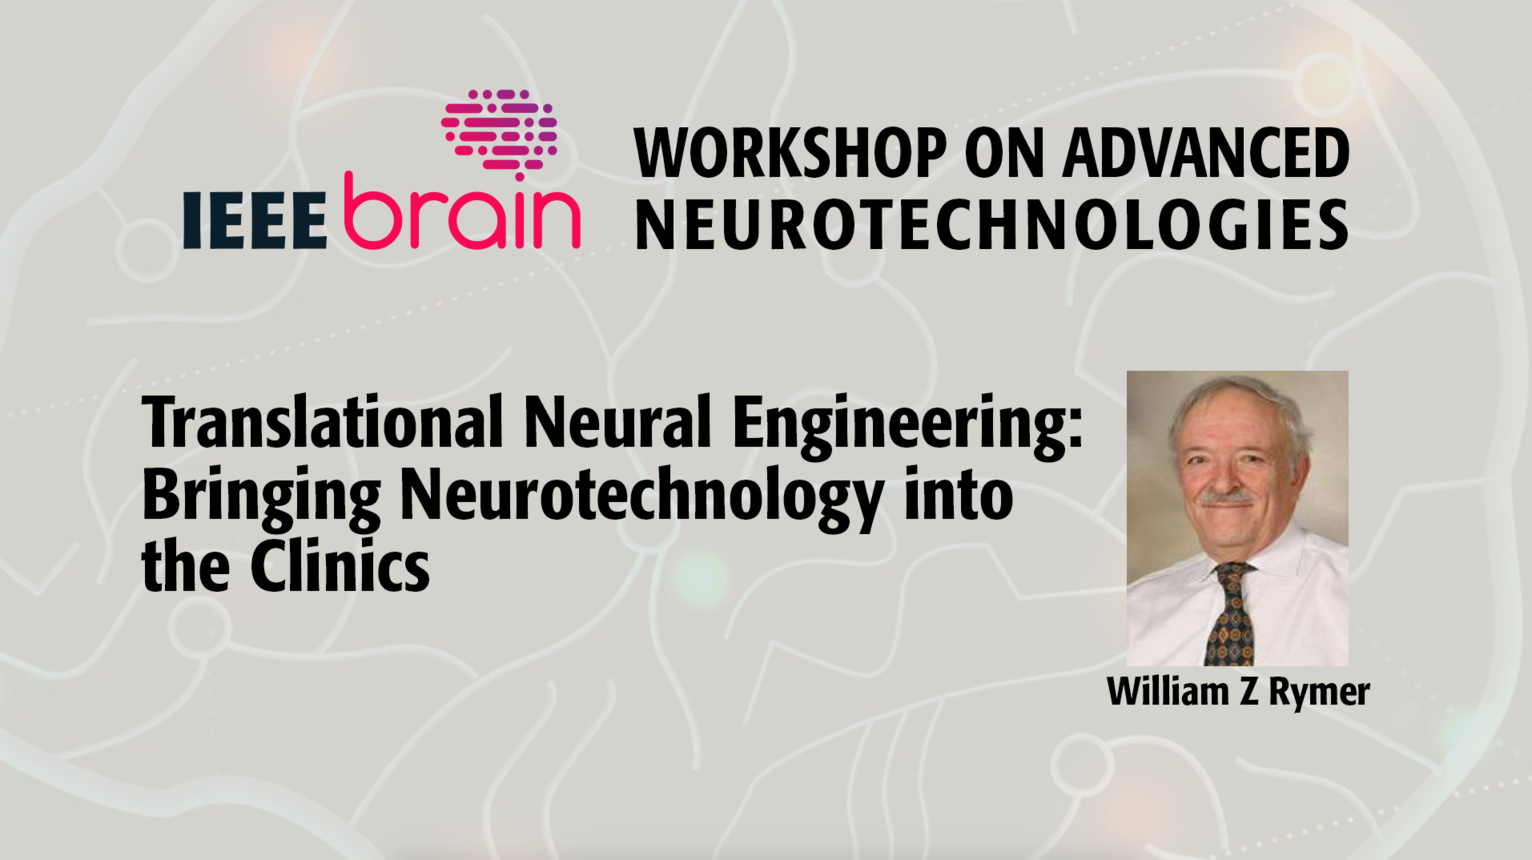 Translational Neural Engineering: Bringing Neurotechnology into the Clinics - IEEE Brain Workshop